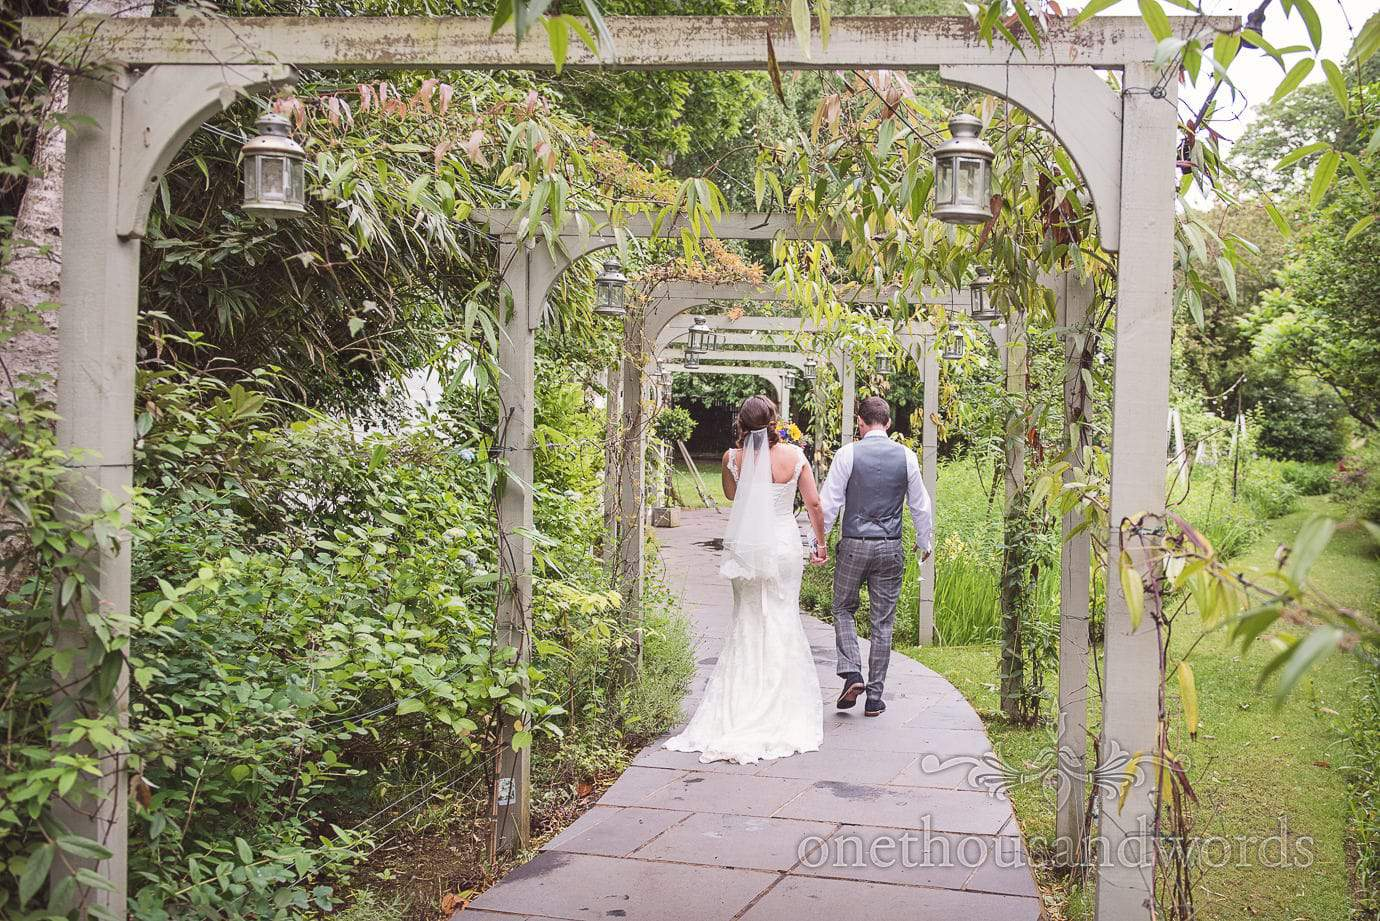 Bride and groom walk through wooden archways in The Old Vicarage wedding gardens